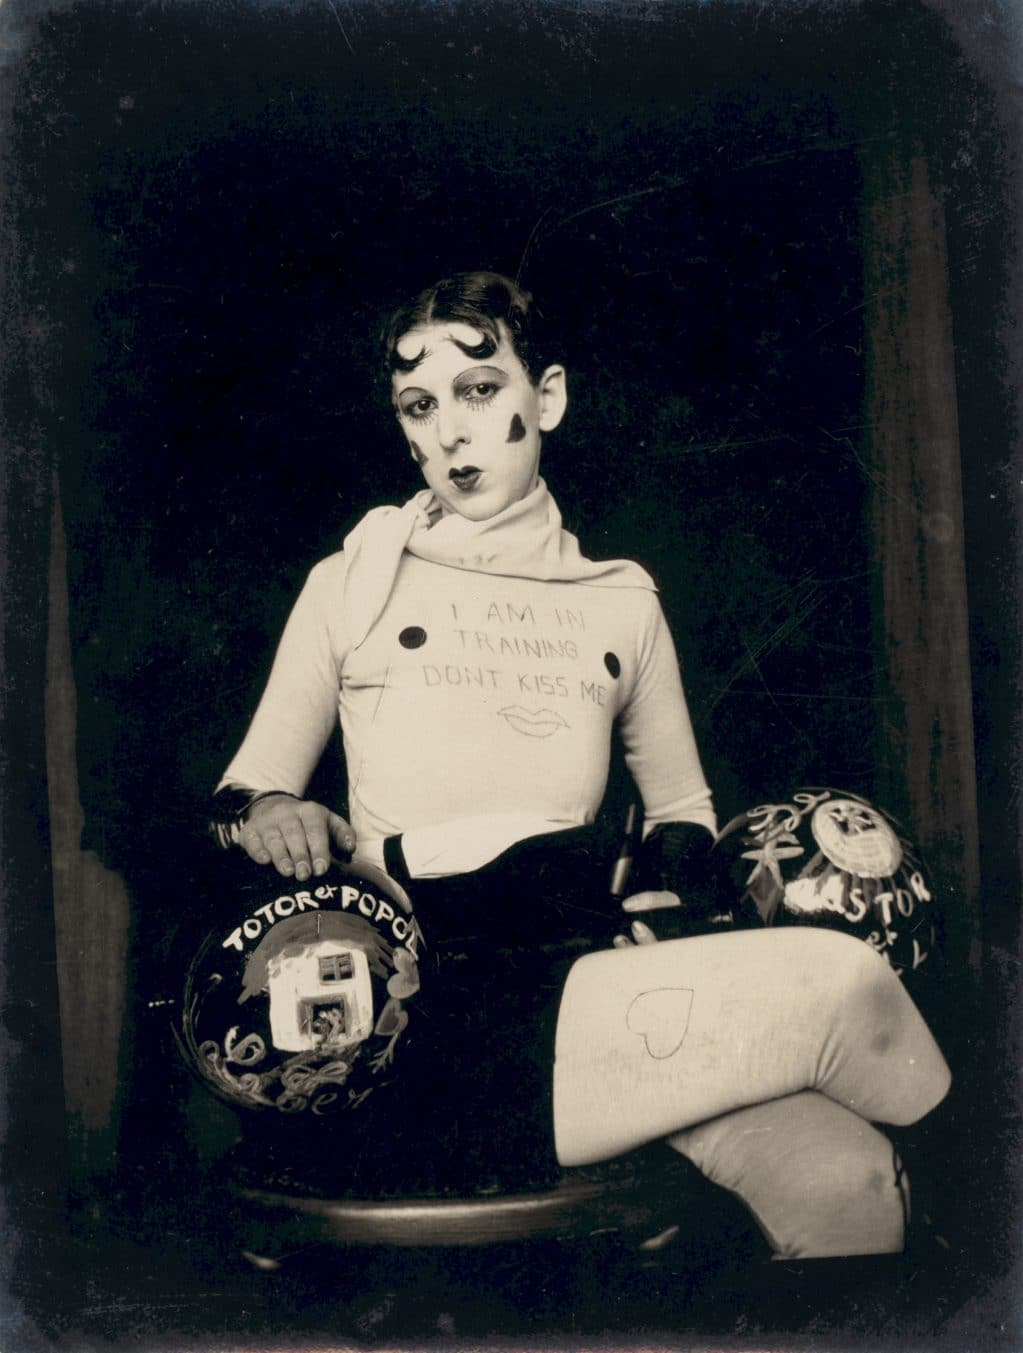 Claude Cahun, I am in training